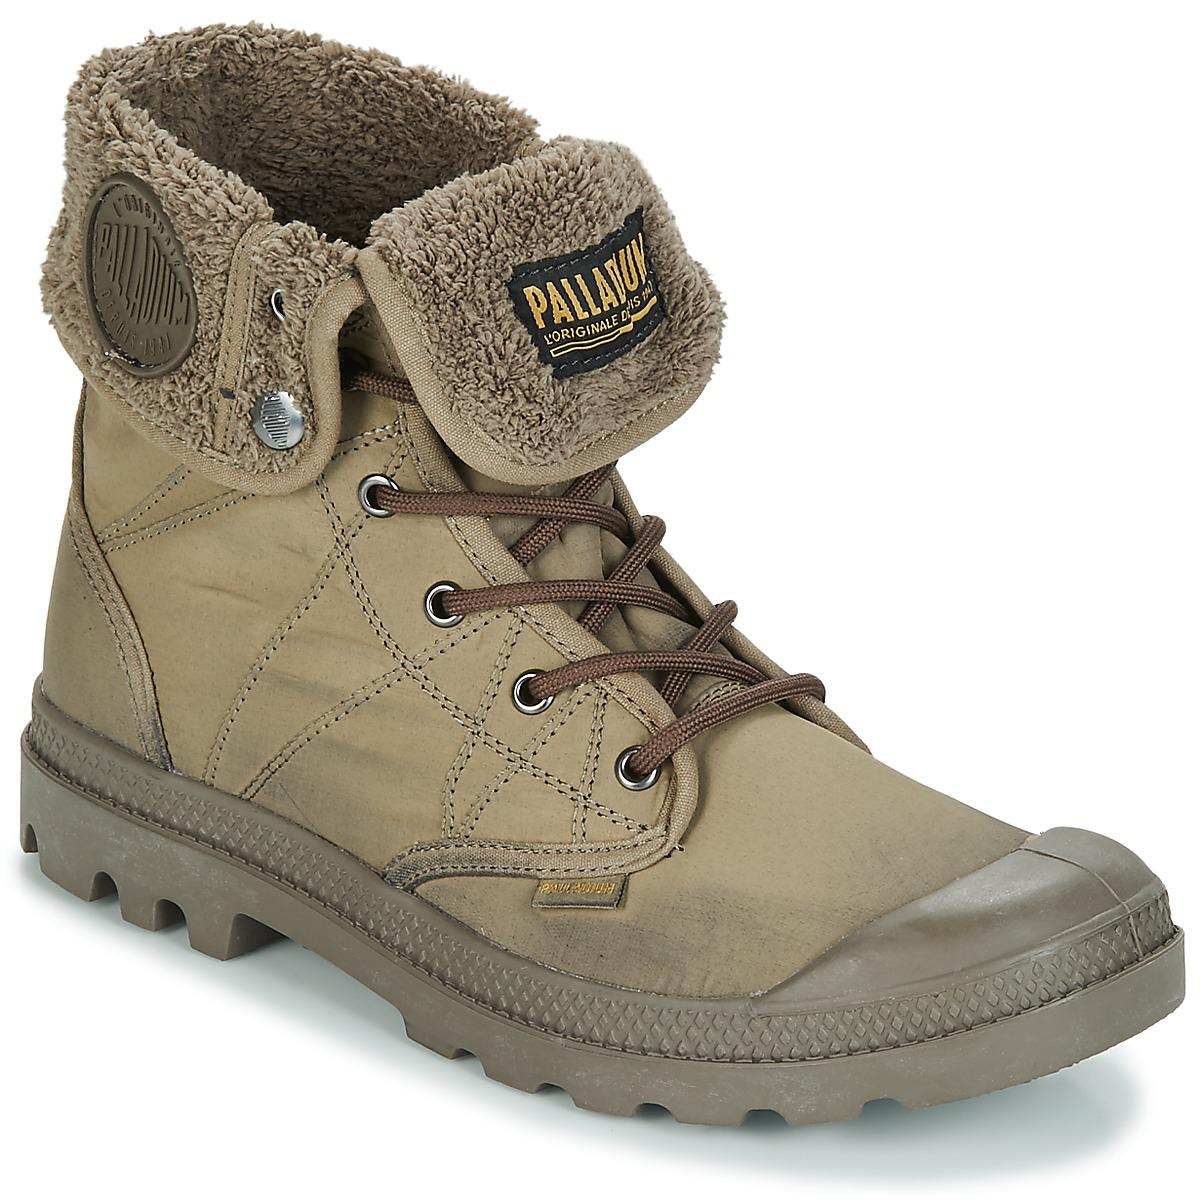 Palladium Pallabrousse BAGGY Tx Mid Boots in Green for Men - Lyst 71e30f99d8